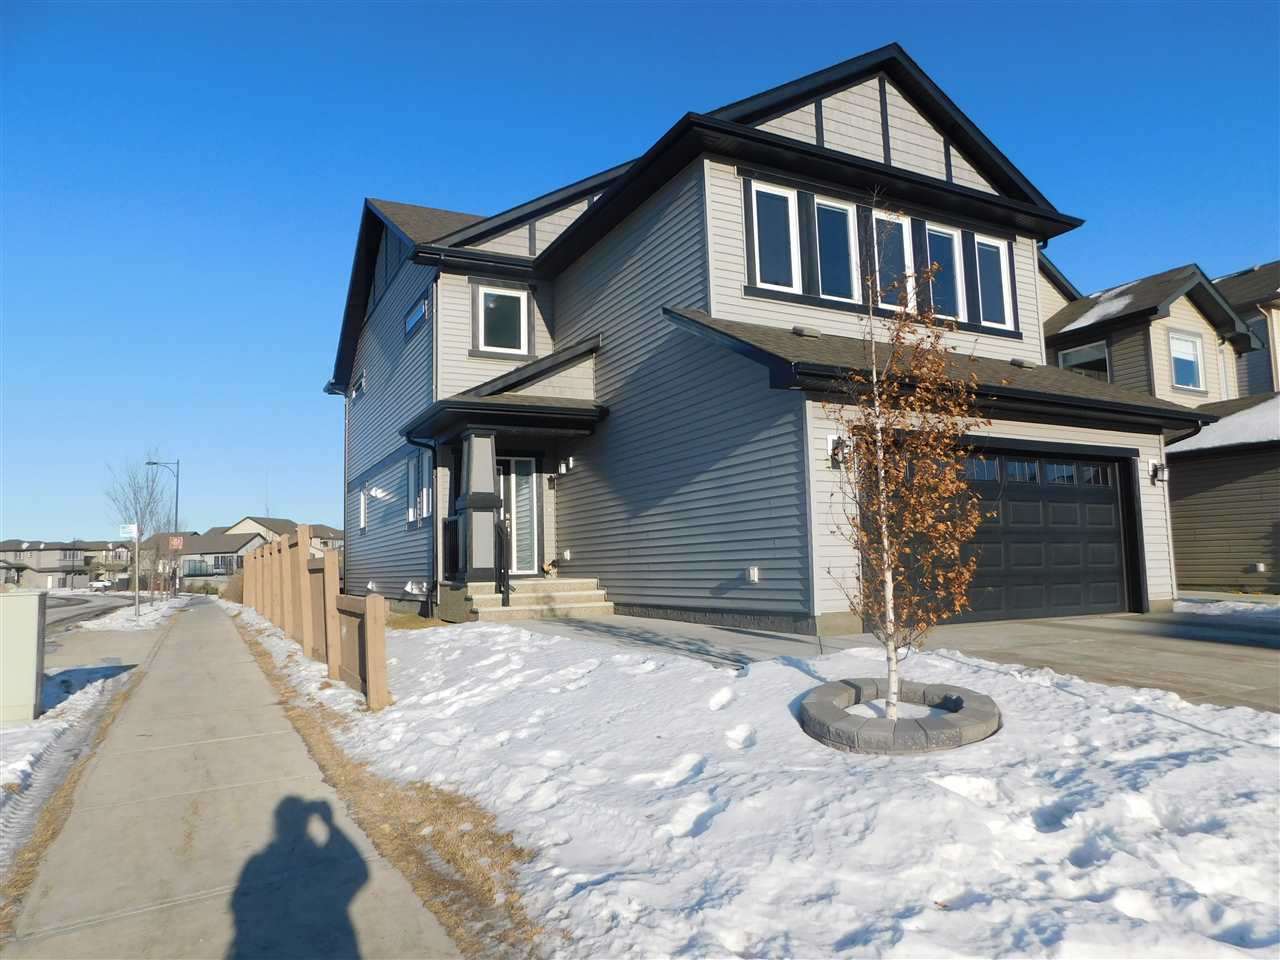 Main Photo: 12268 168 Avenue in Edmonton: Zone 27 House for sale : MLS®# E4183910